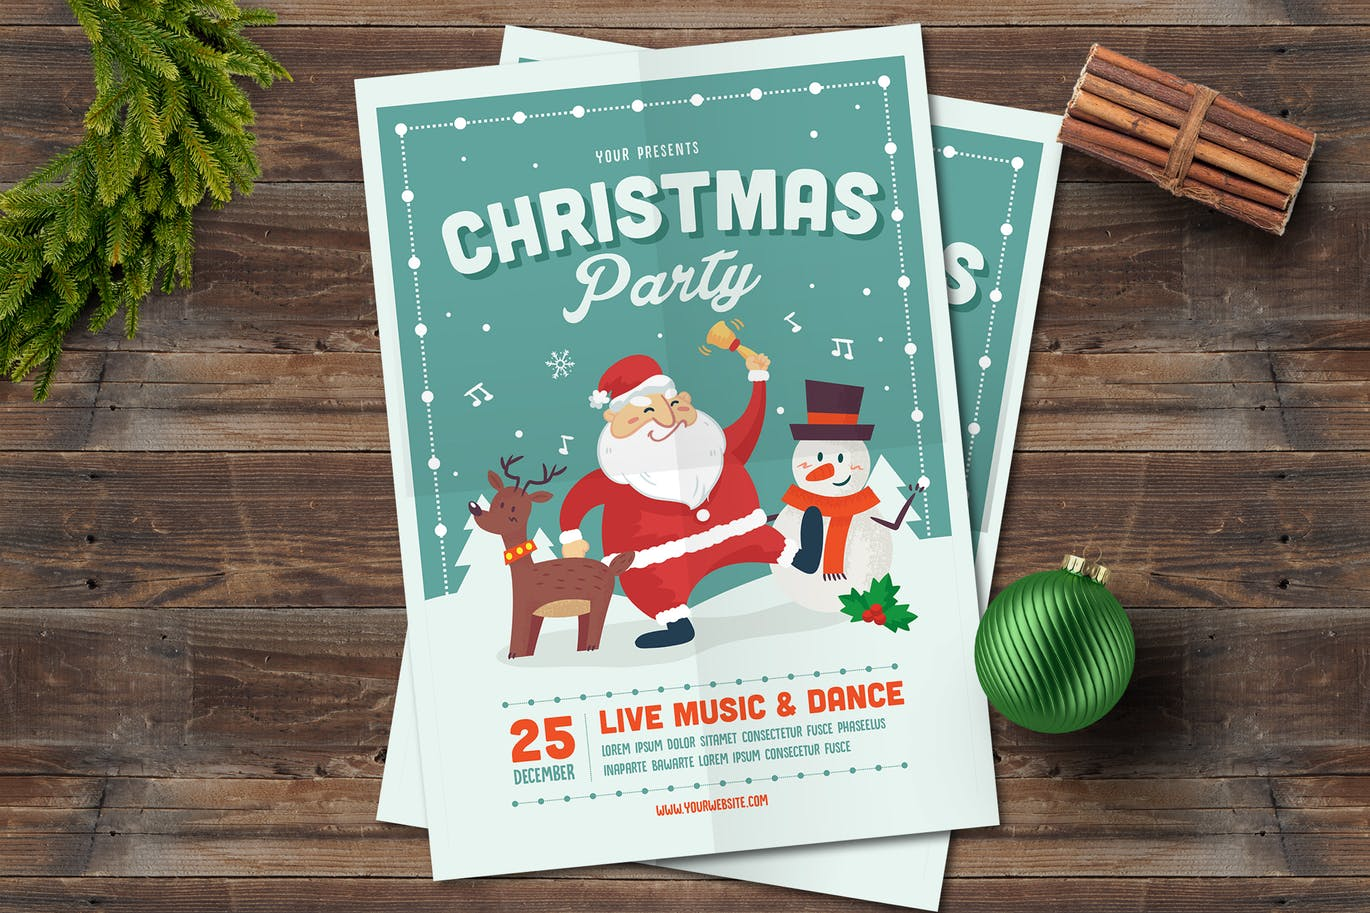 Christmas Holiday Cards And Invitations Amberblue Media